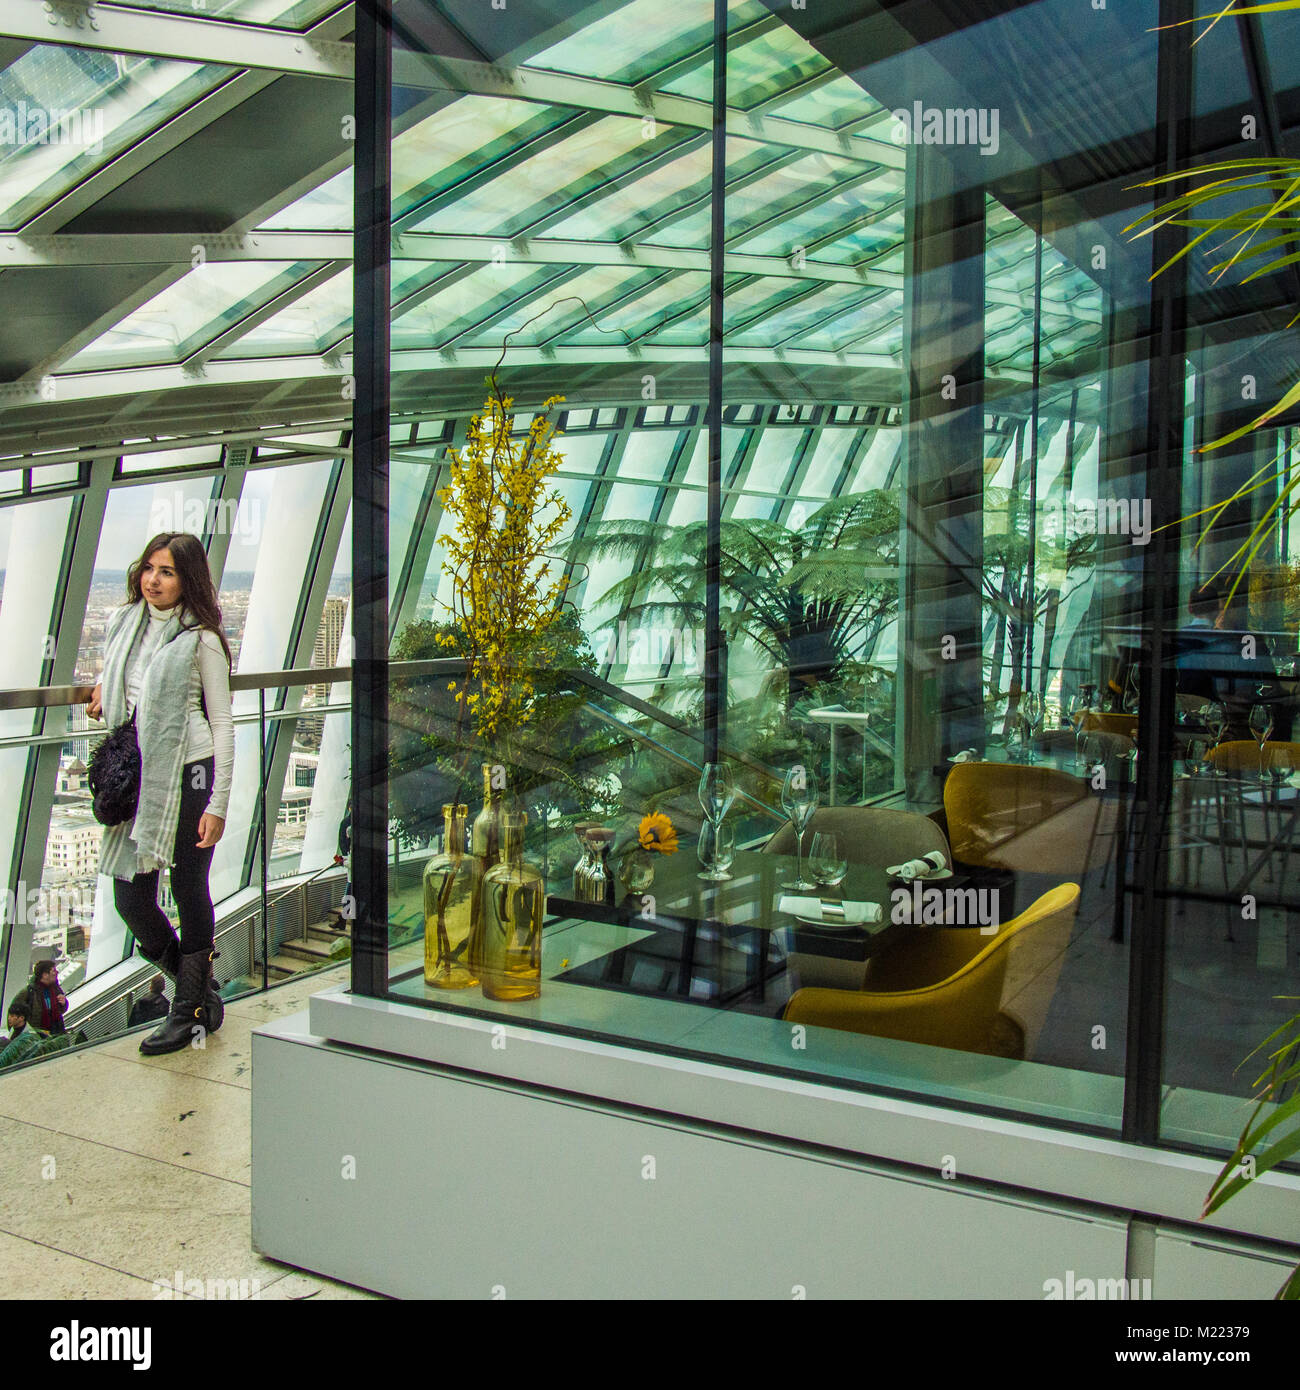 Sky Garden Restaurant Inside The Skyscraper At Fenchurch St London Stock Photo Alamy